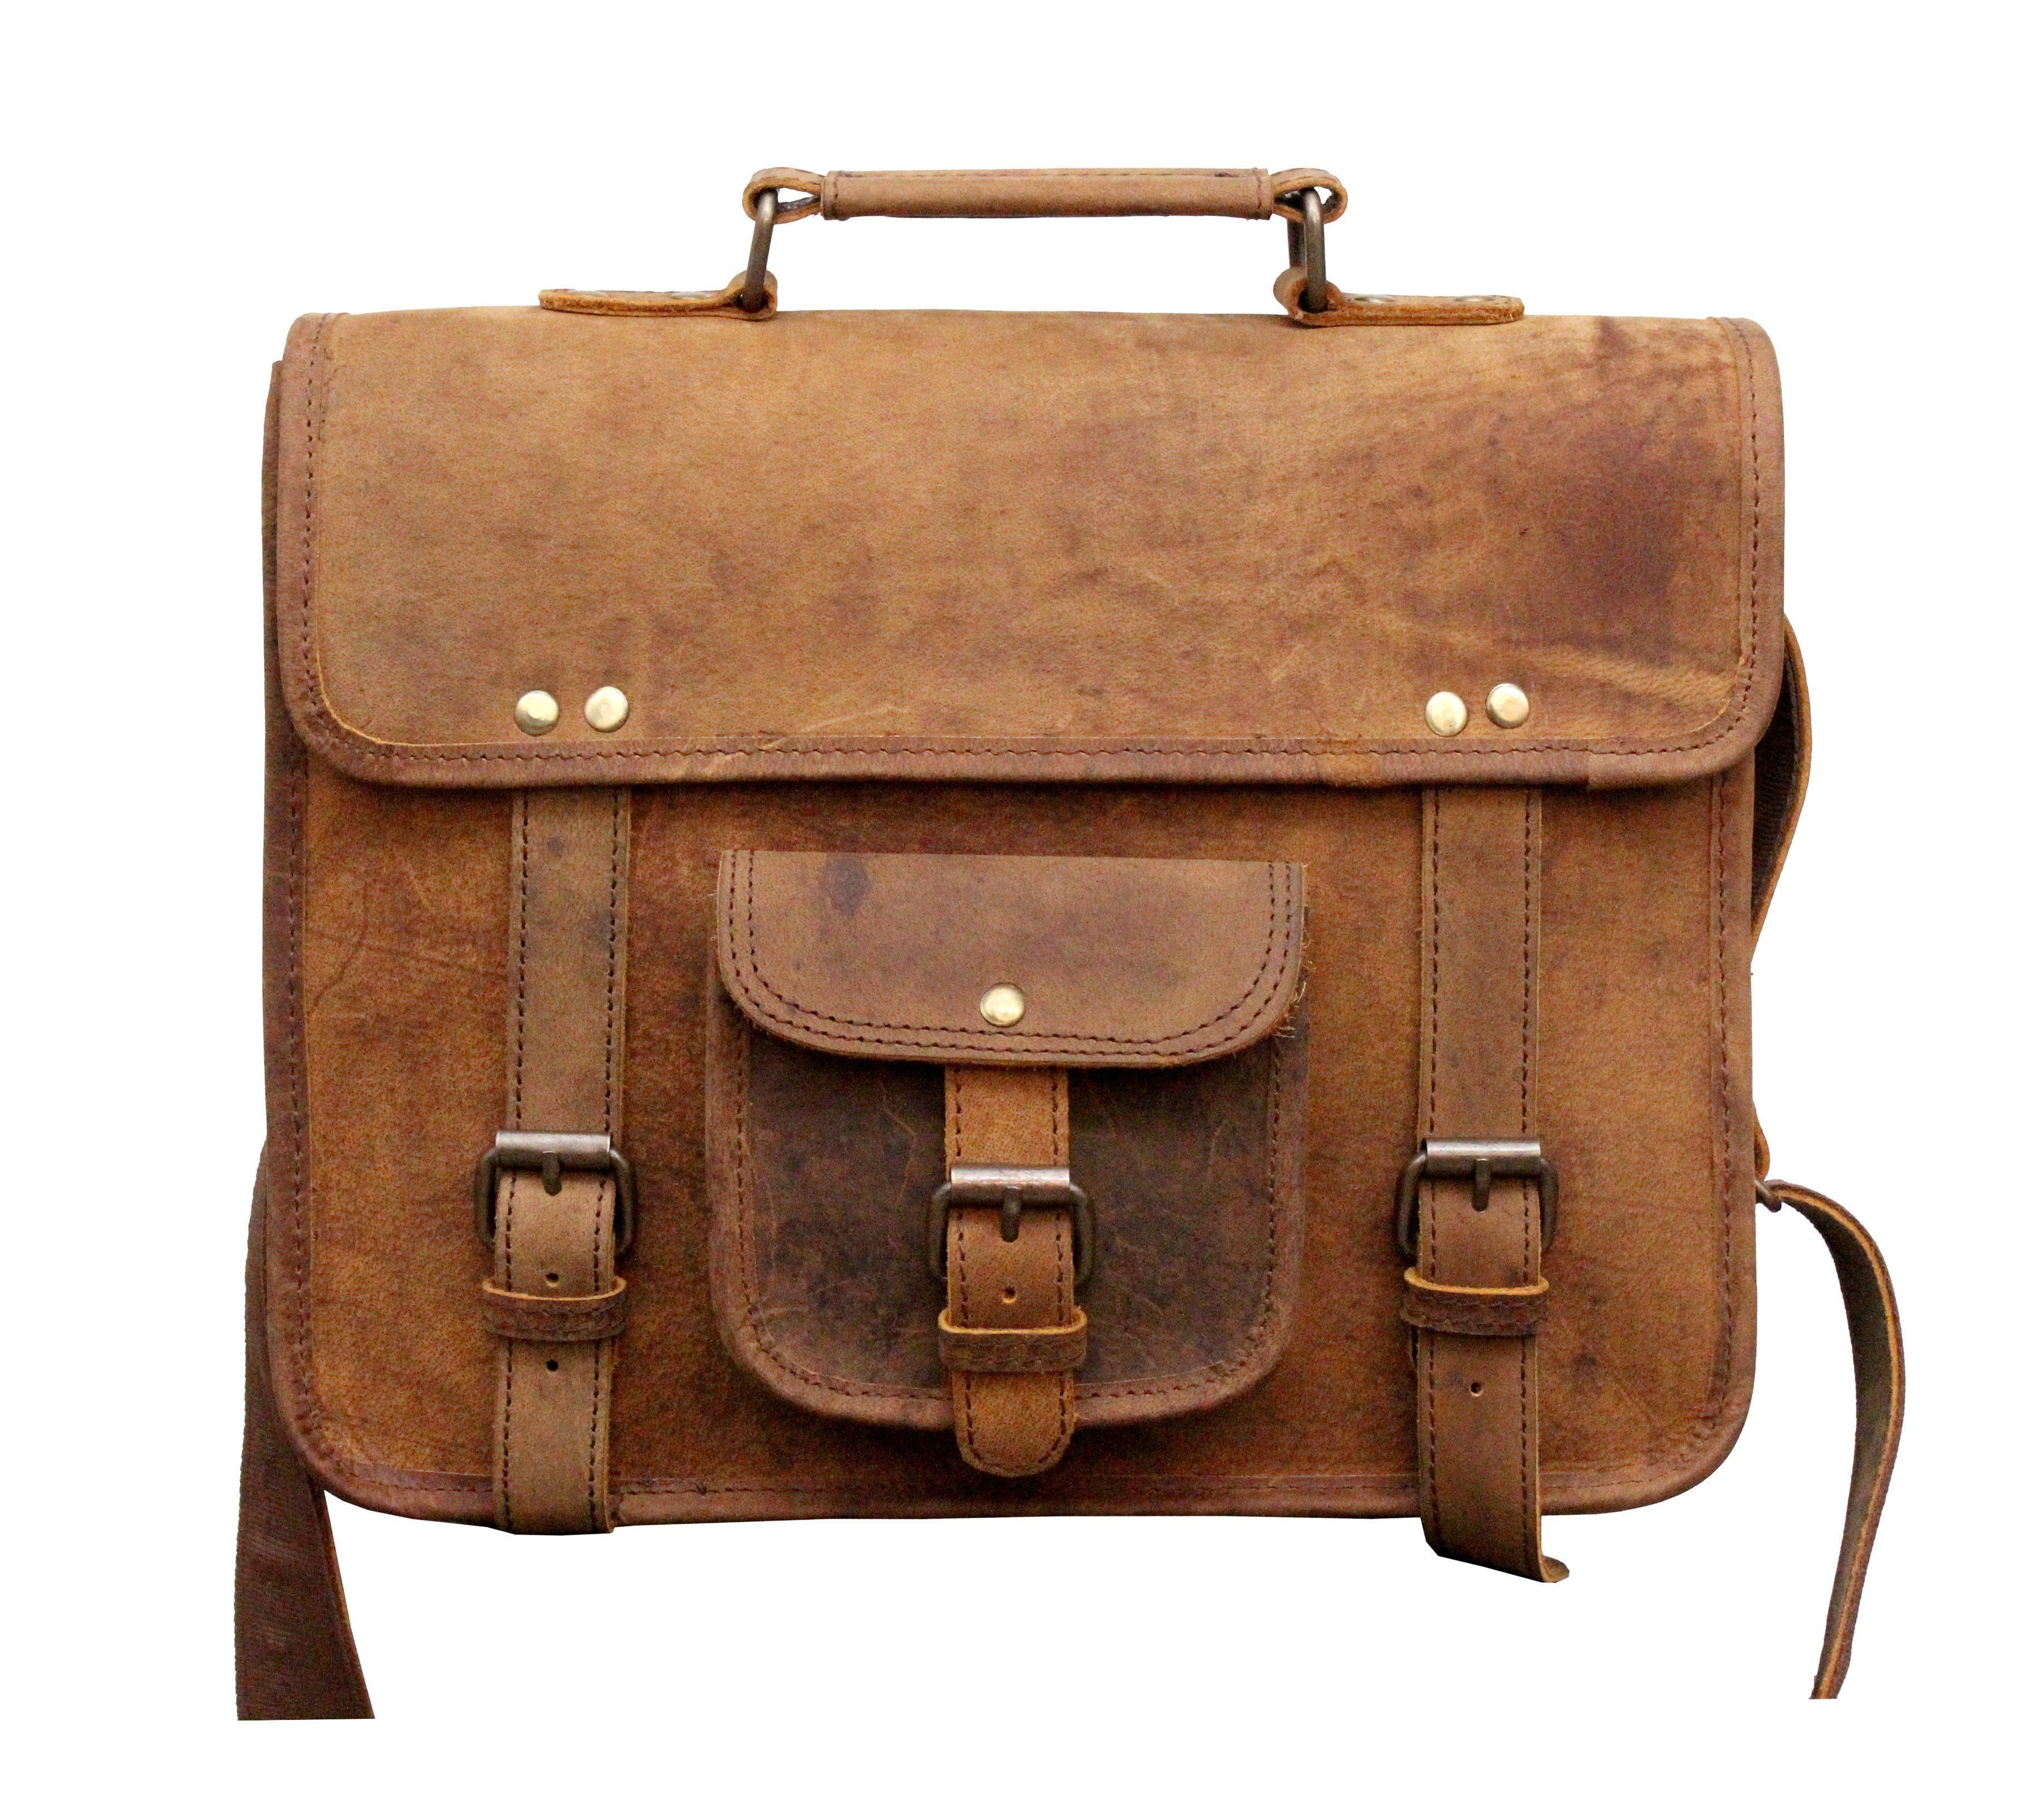 IN-INDIA Buffalo Hunter Leather Cute Regular Use Messenger Satchel Bag-  Fits Laptop Upto 13.3 Inches 2fa9289946f96